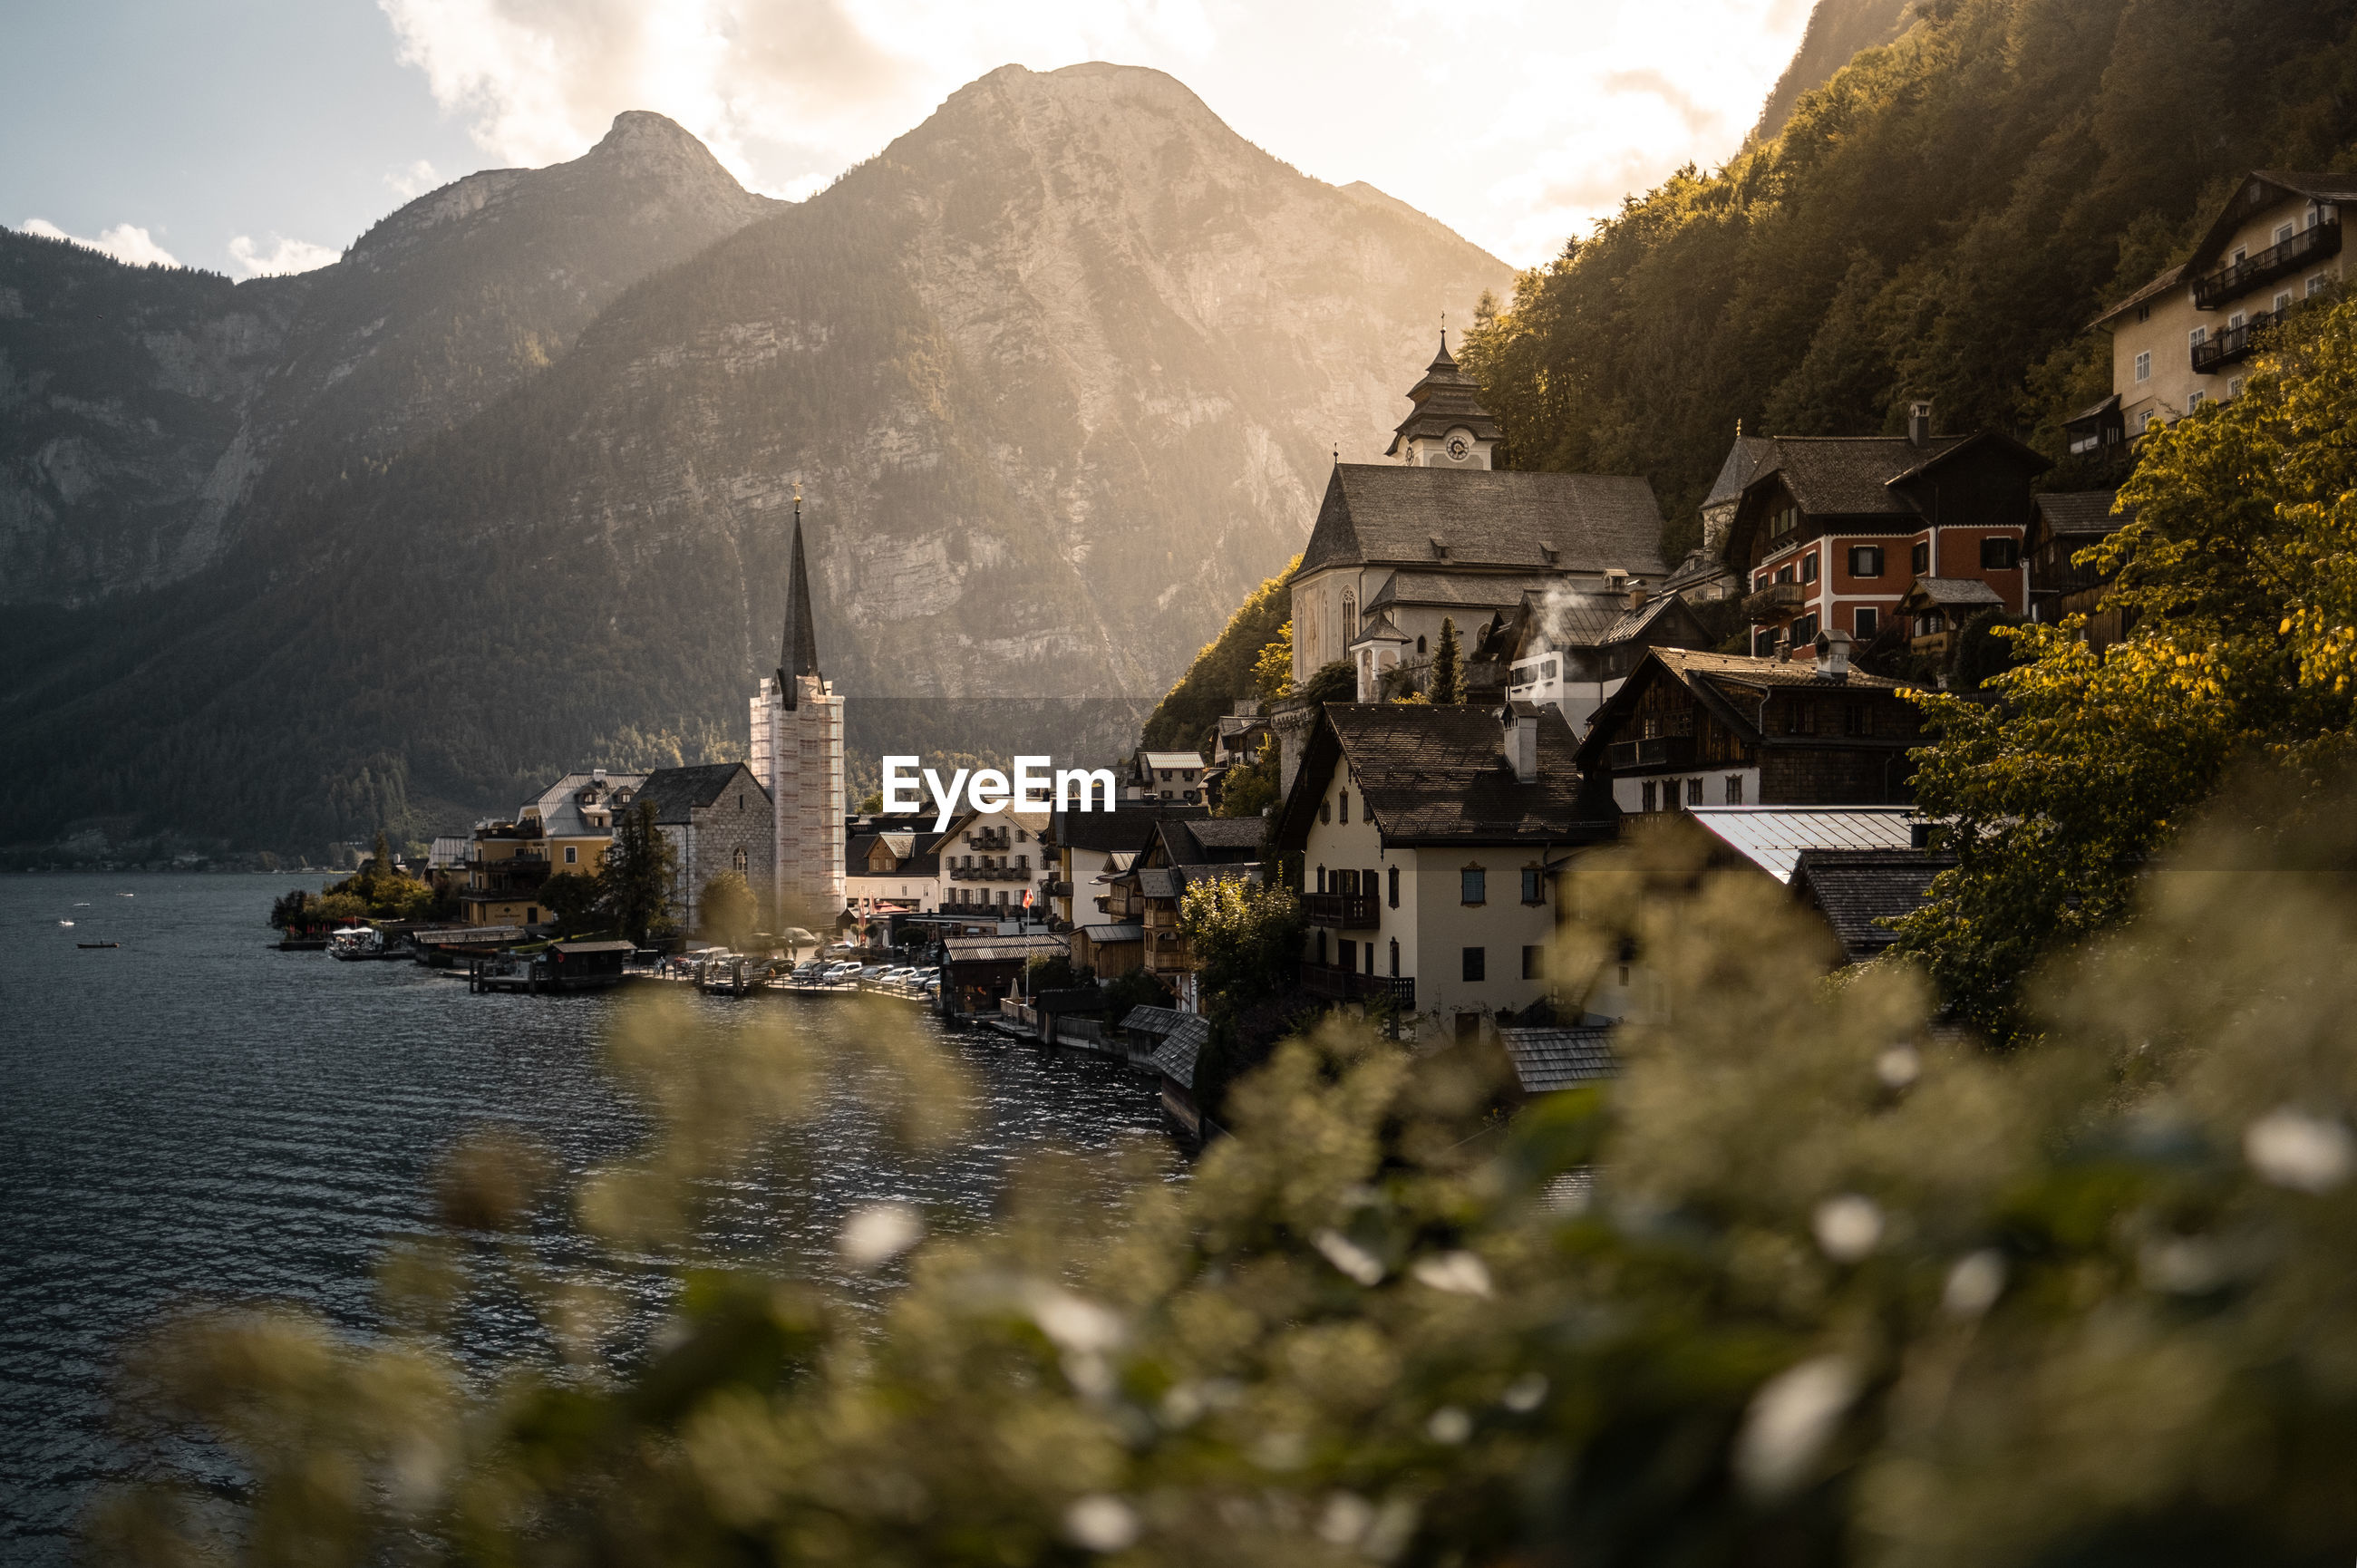 Buildings and mountains by lake in city